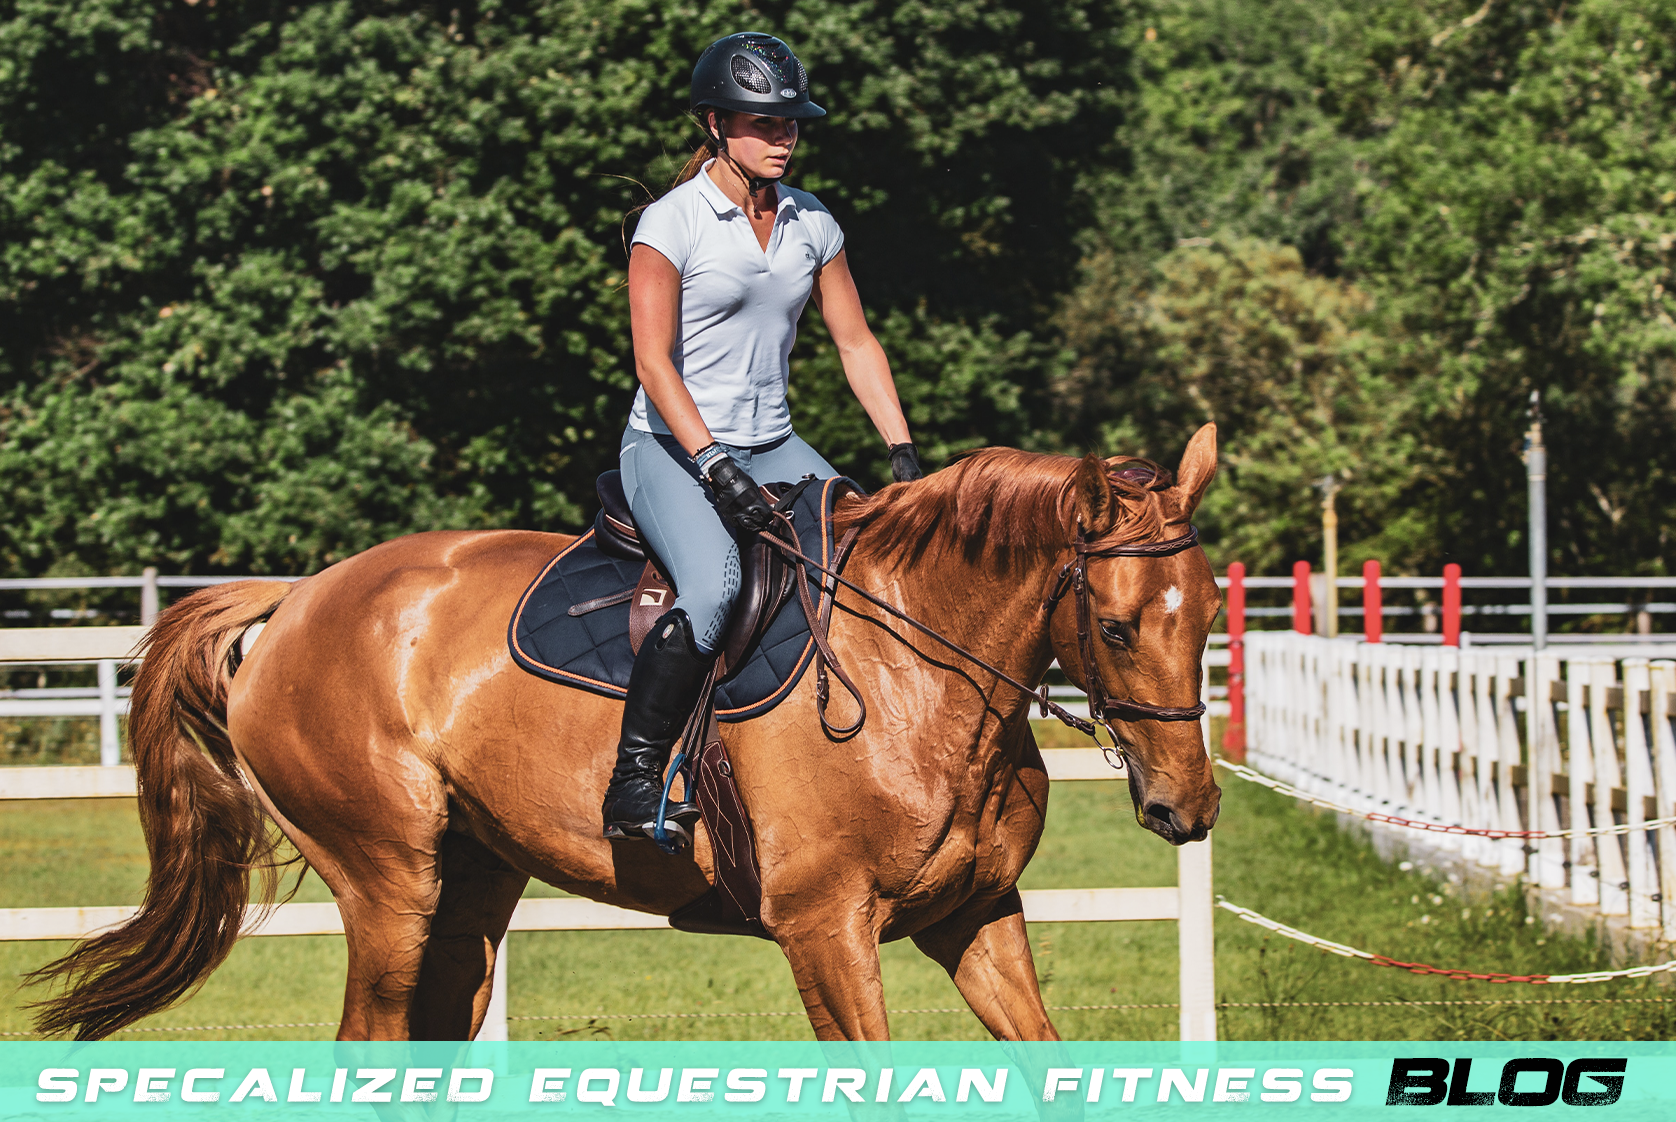 Fit To Ride: Physical Fitness for Equestrian Athletes